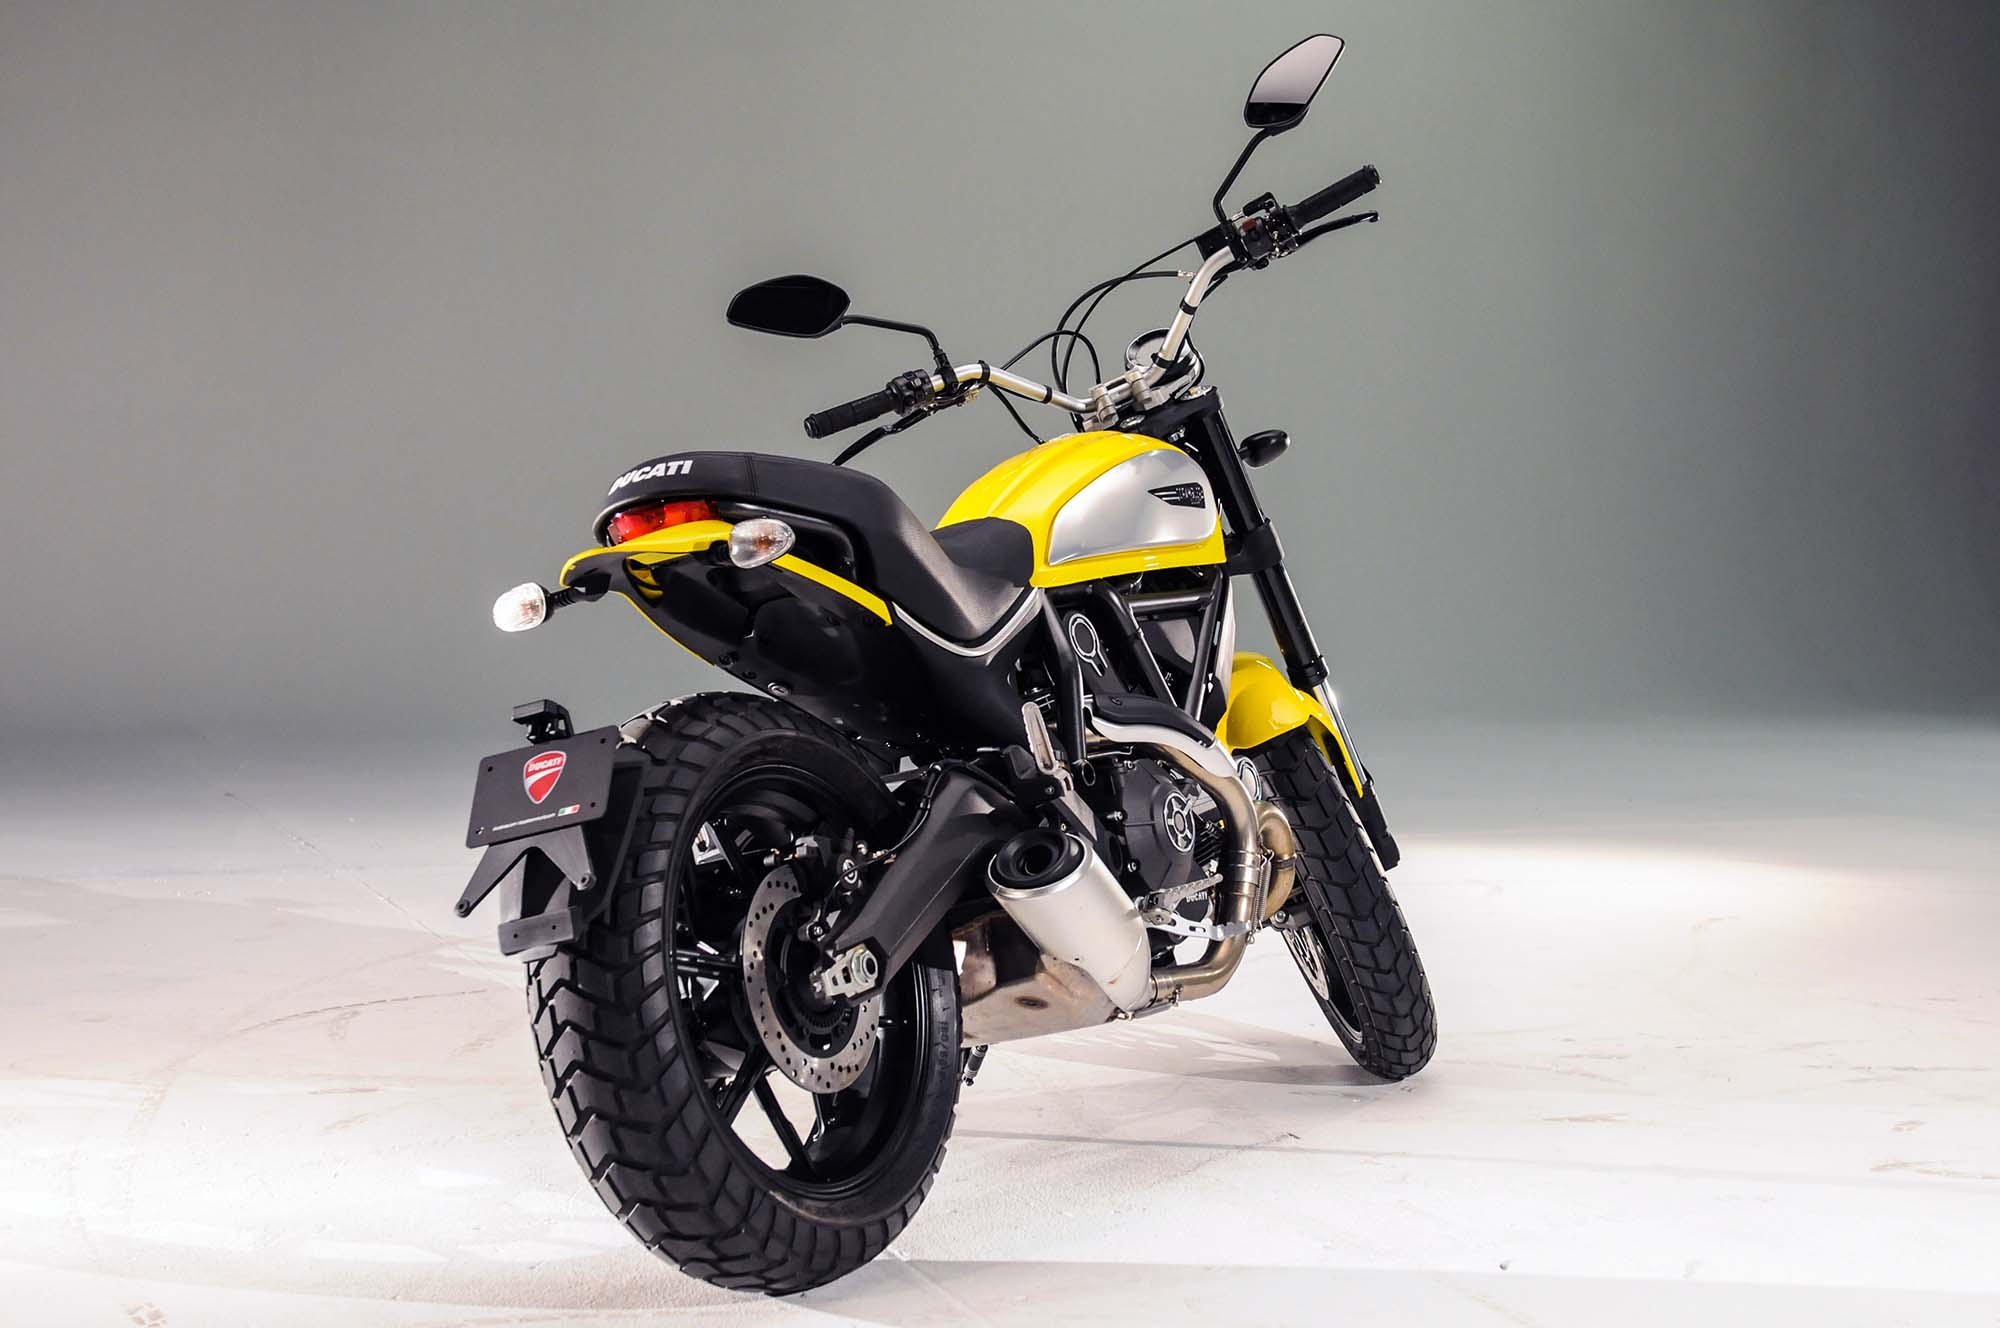 Custom Exhaust For Motorcycles Up-Close with the Ducati Scrambler Icon - Asphalt & Rubber